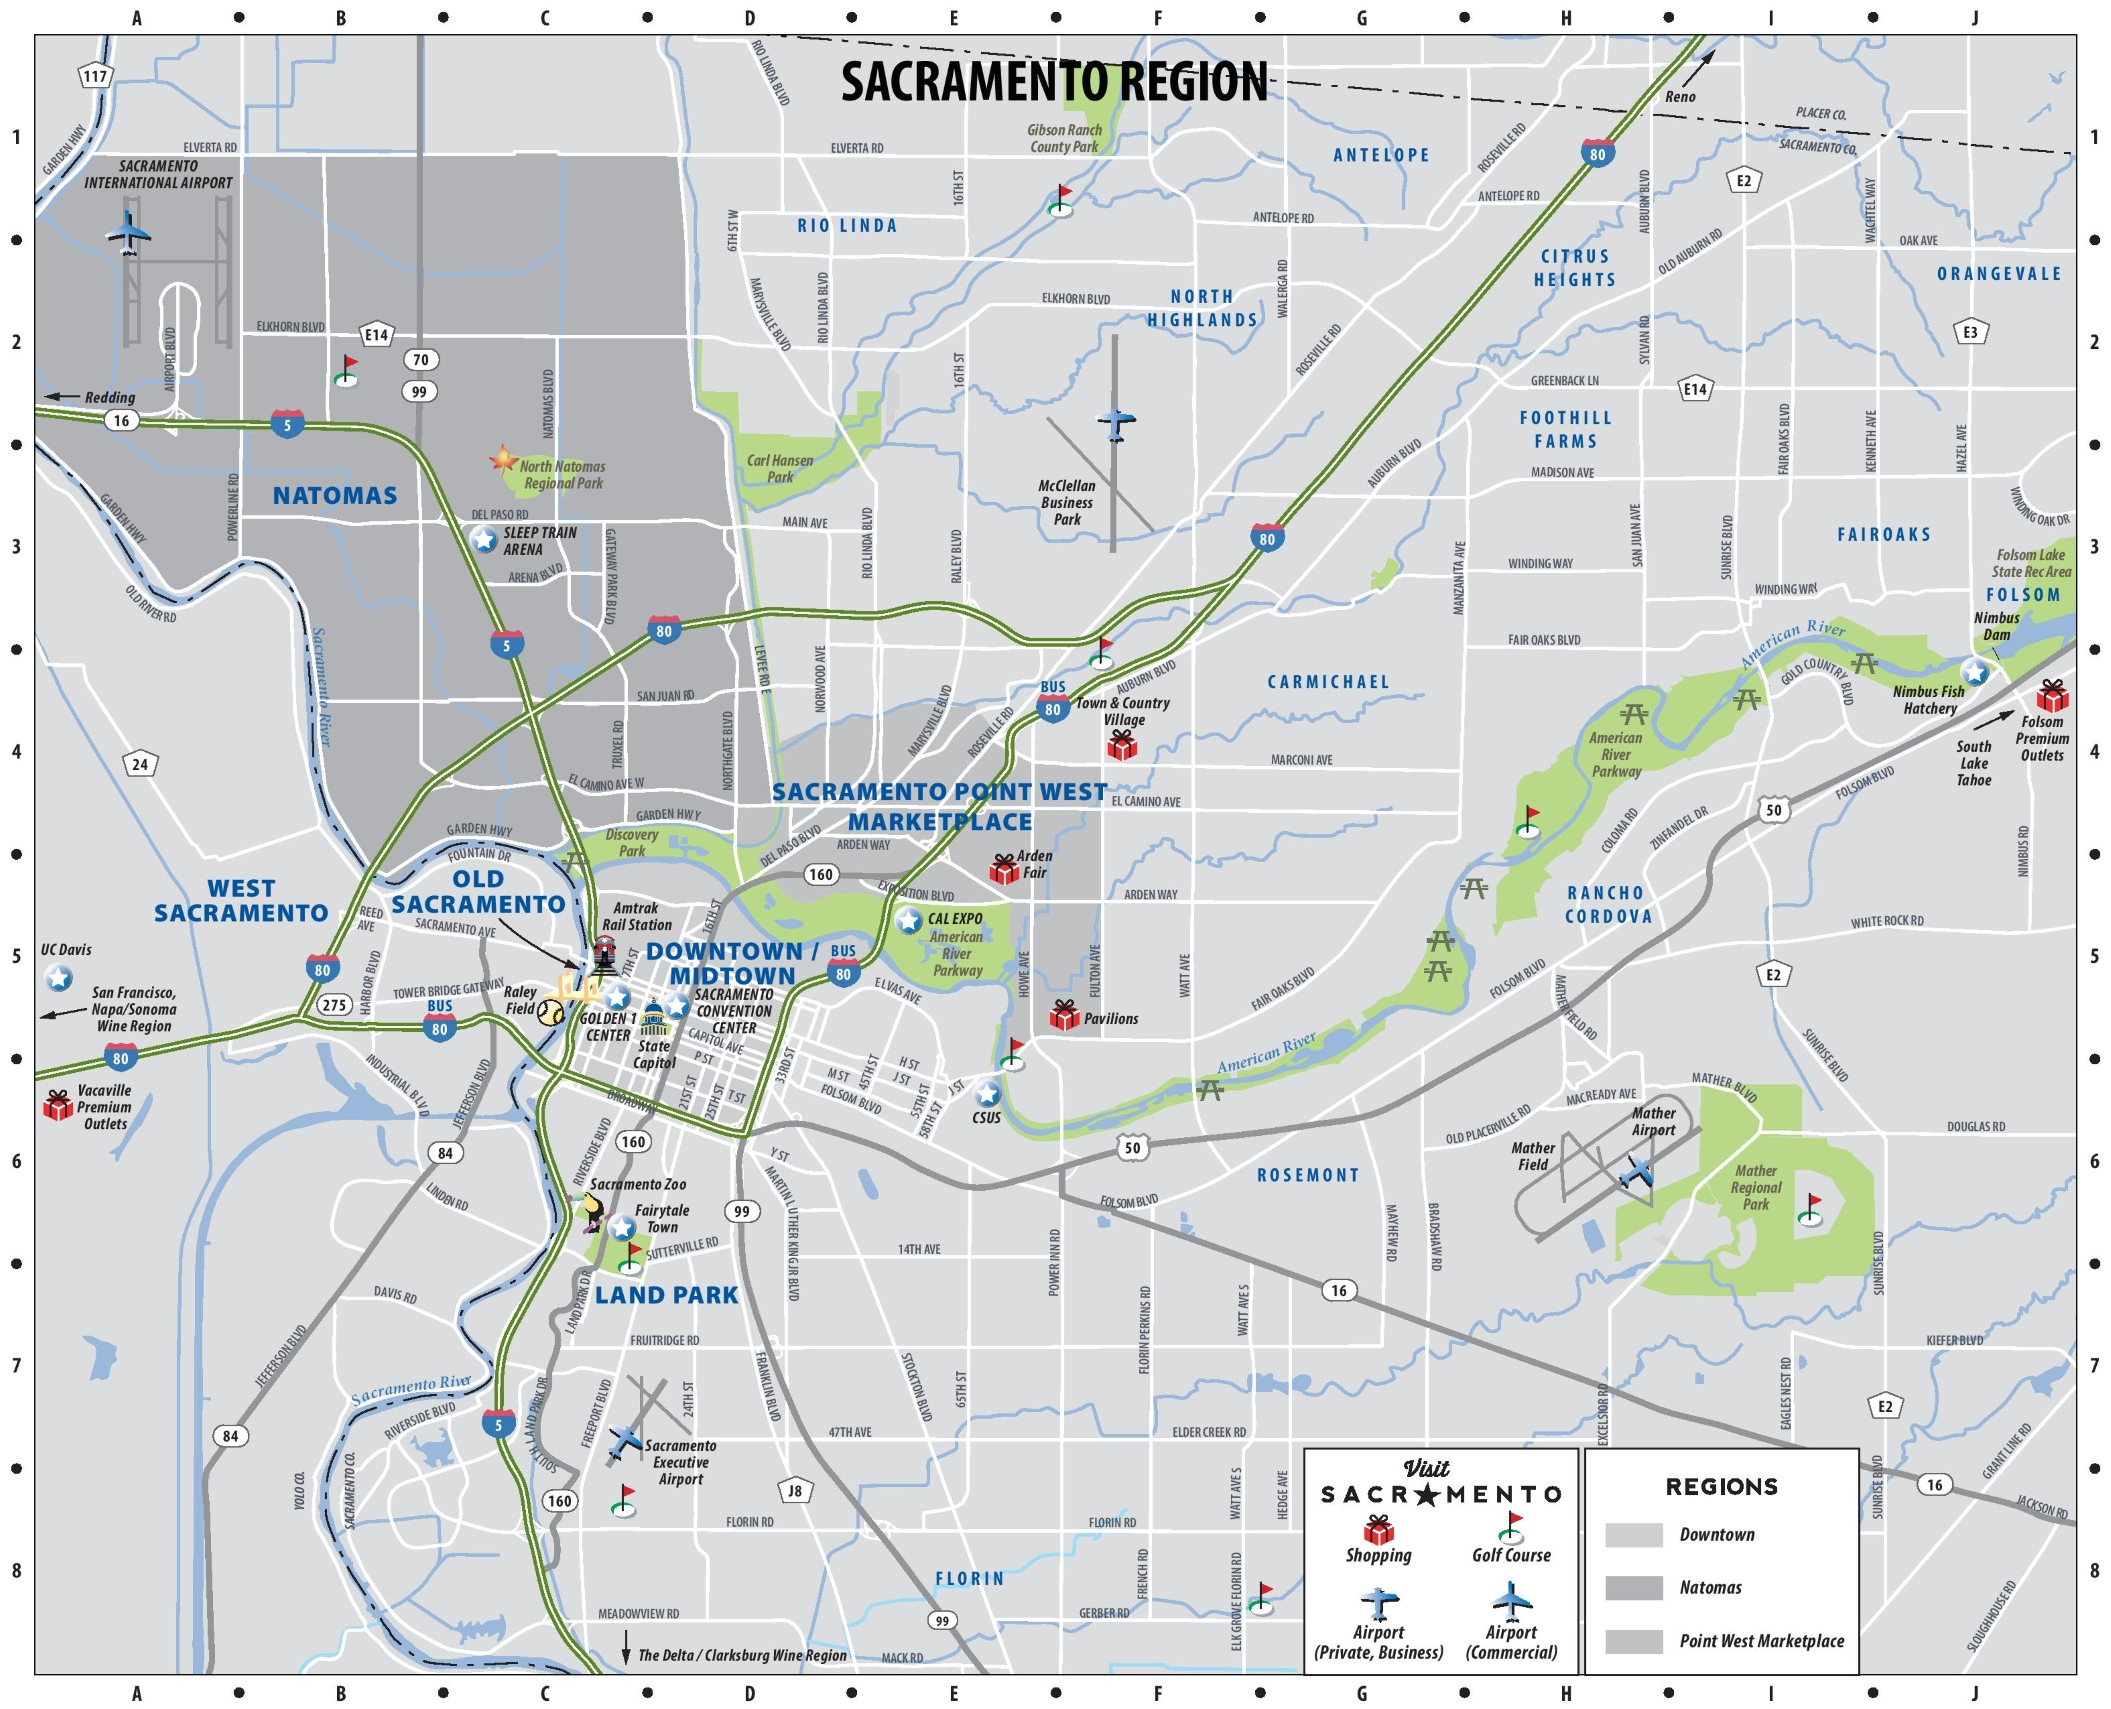 Sacramento region map